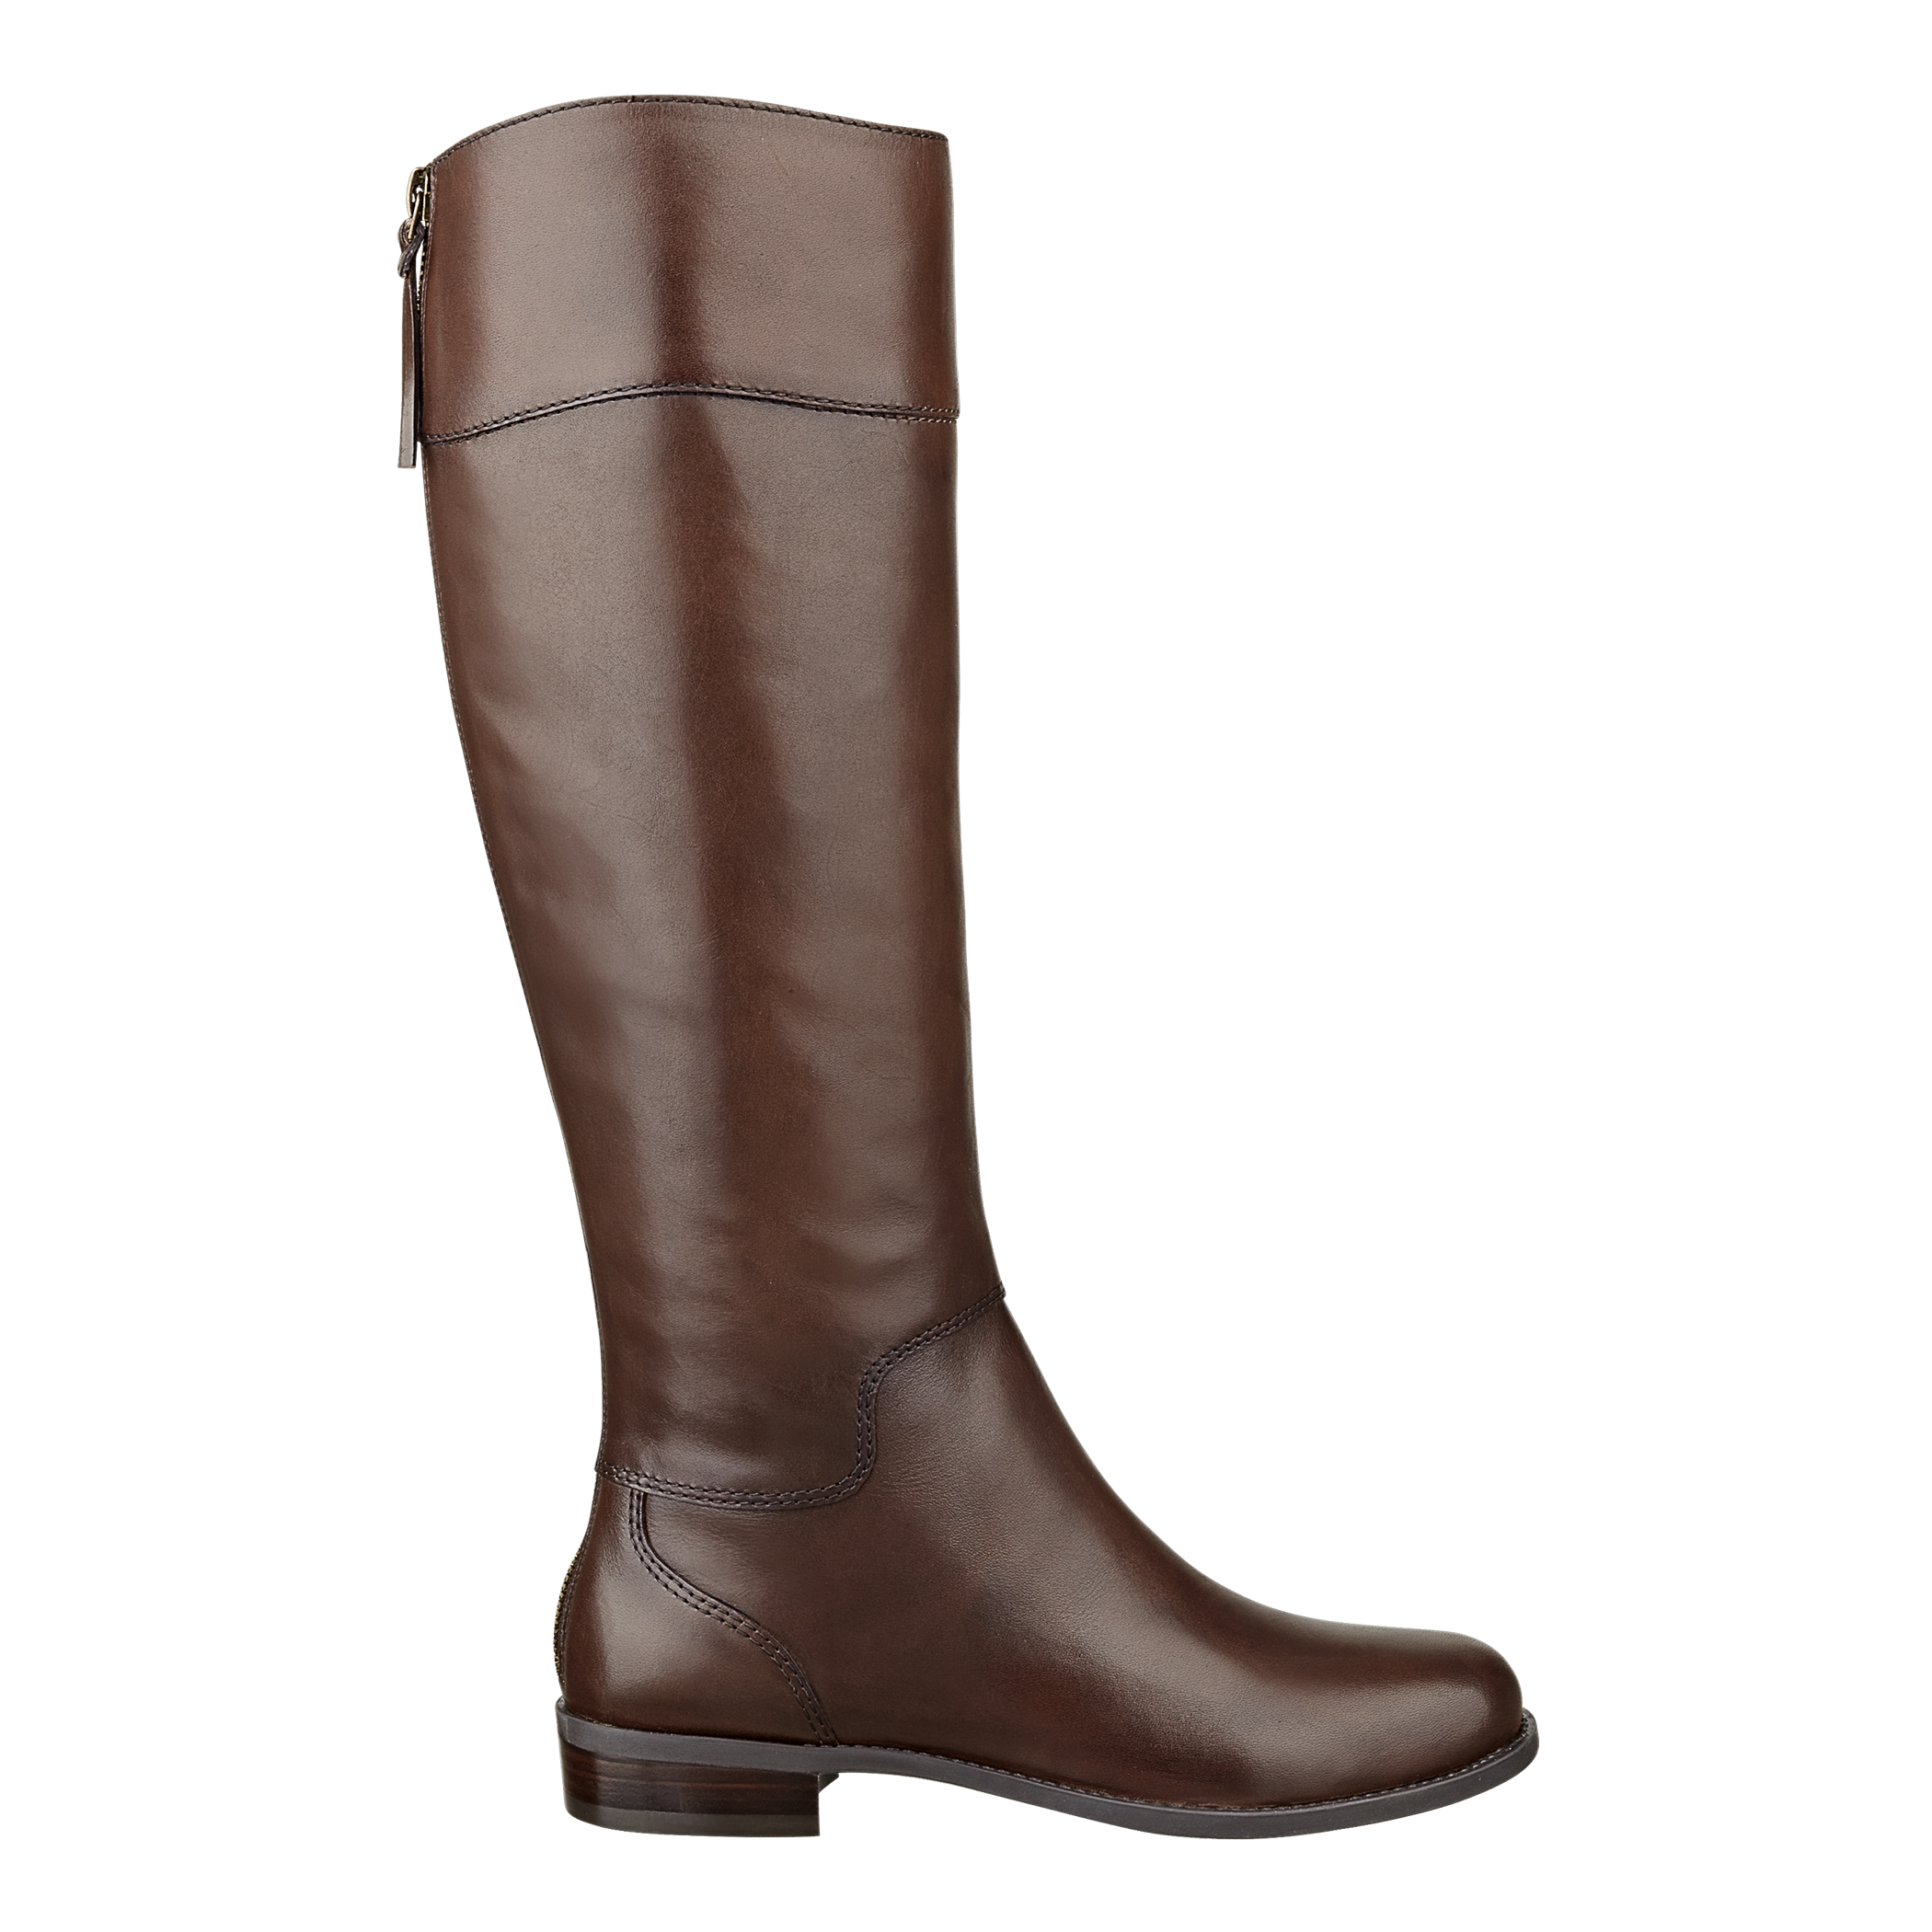 nine west counter boot in brown brown leather lyst